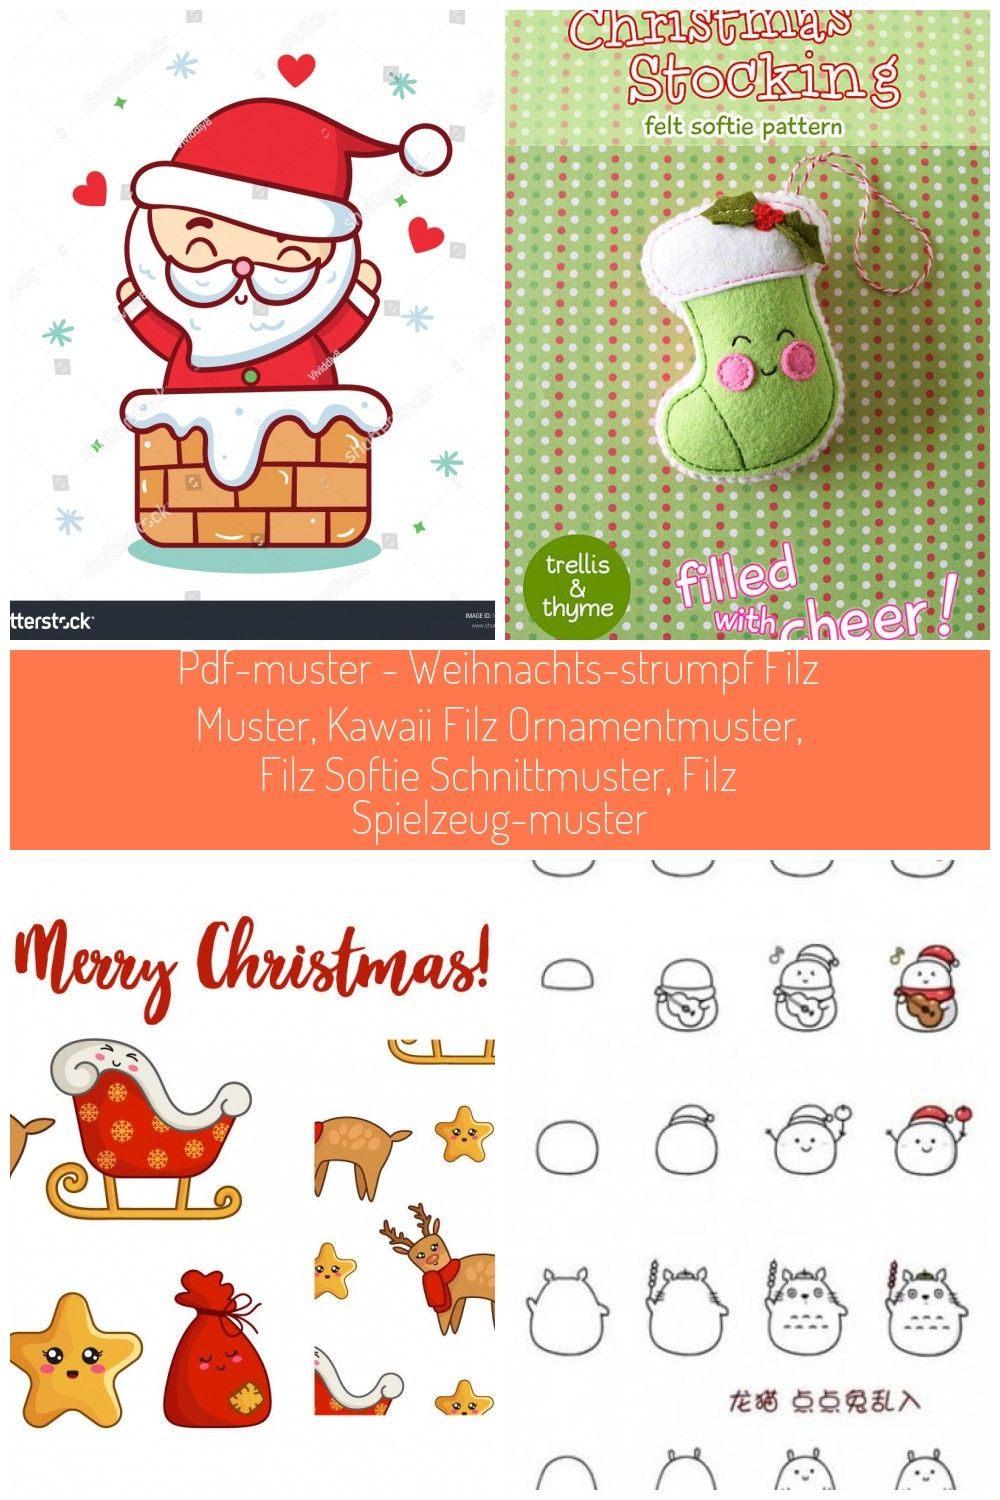 Christmas Santa Claus character vector (Kawaii Cartoon) illustrations isolated on white. Happy New